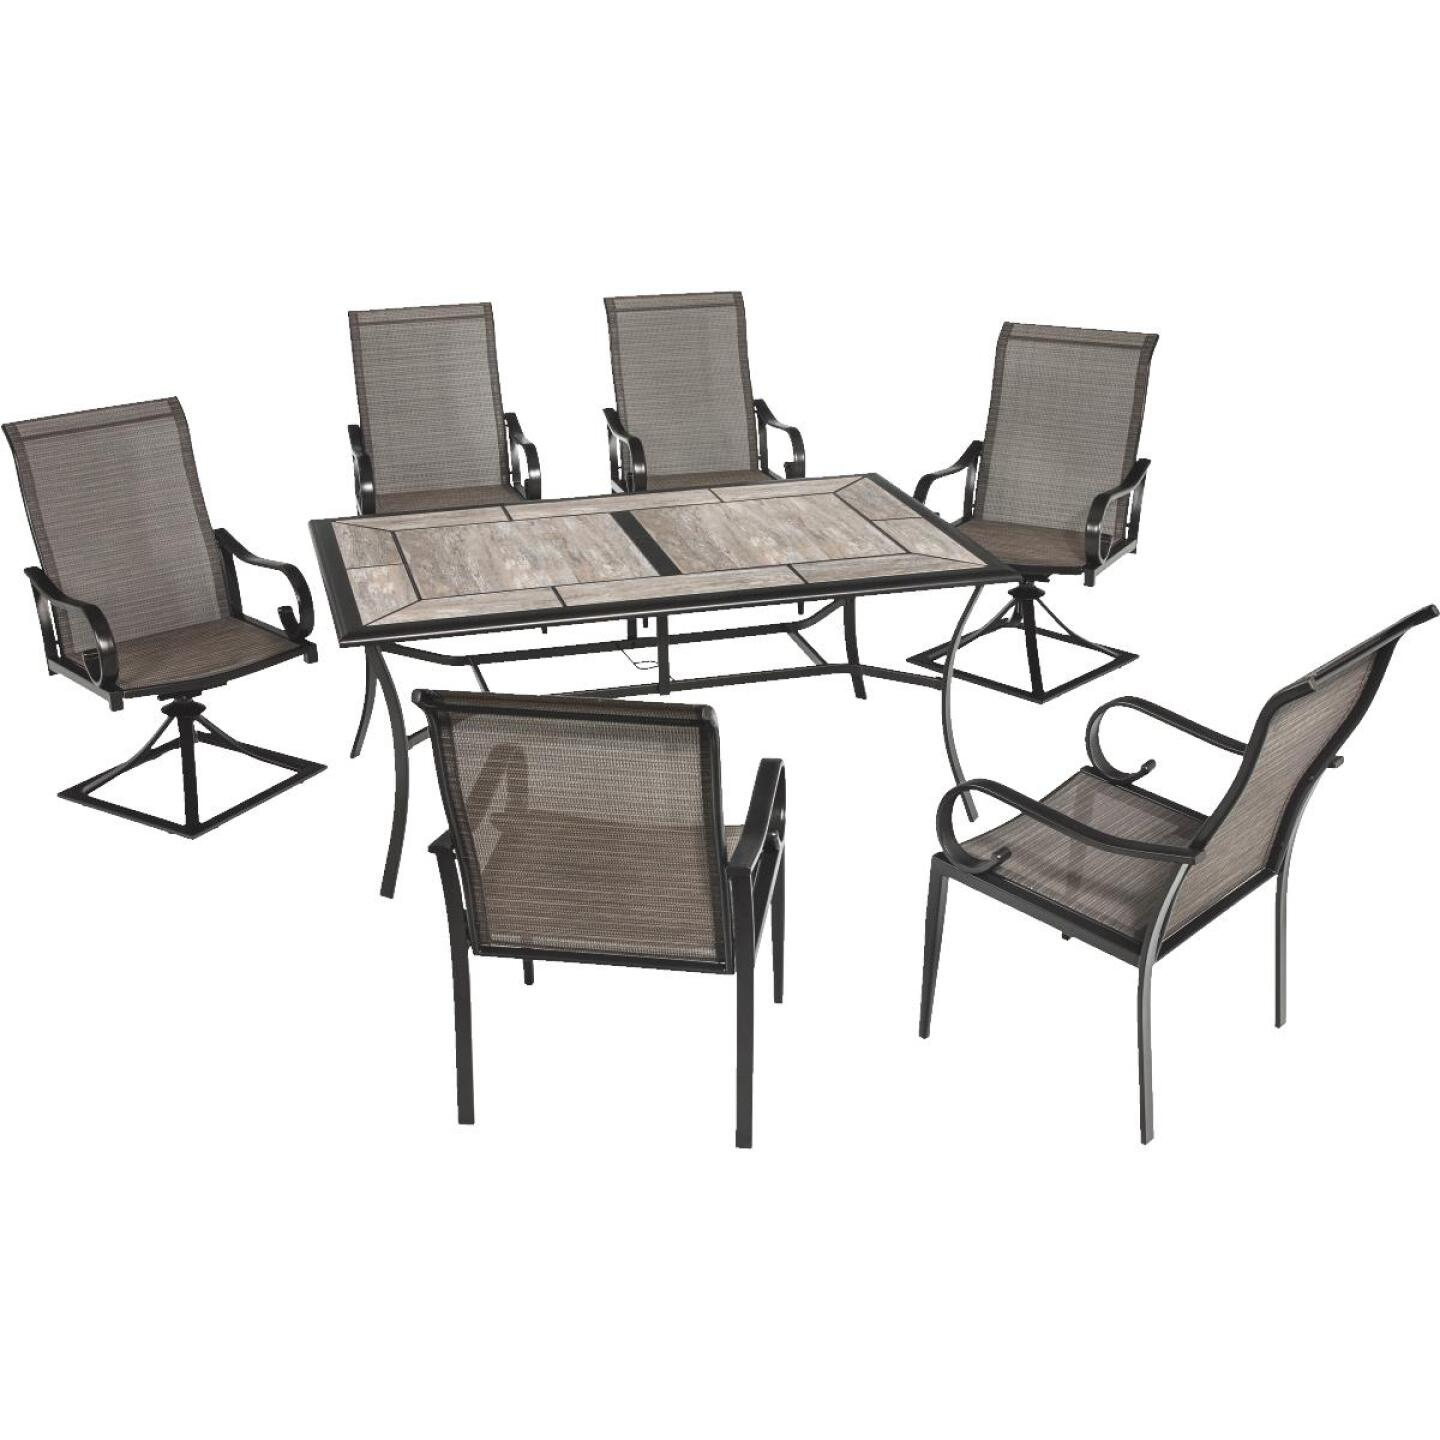 Outdoor Expressions Berkshire 7-Piece Dining Set Image 247